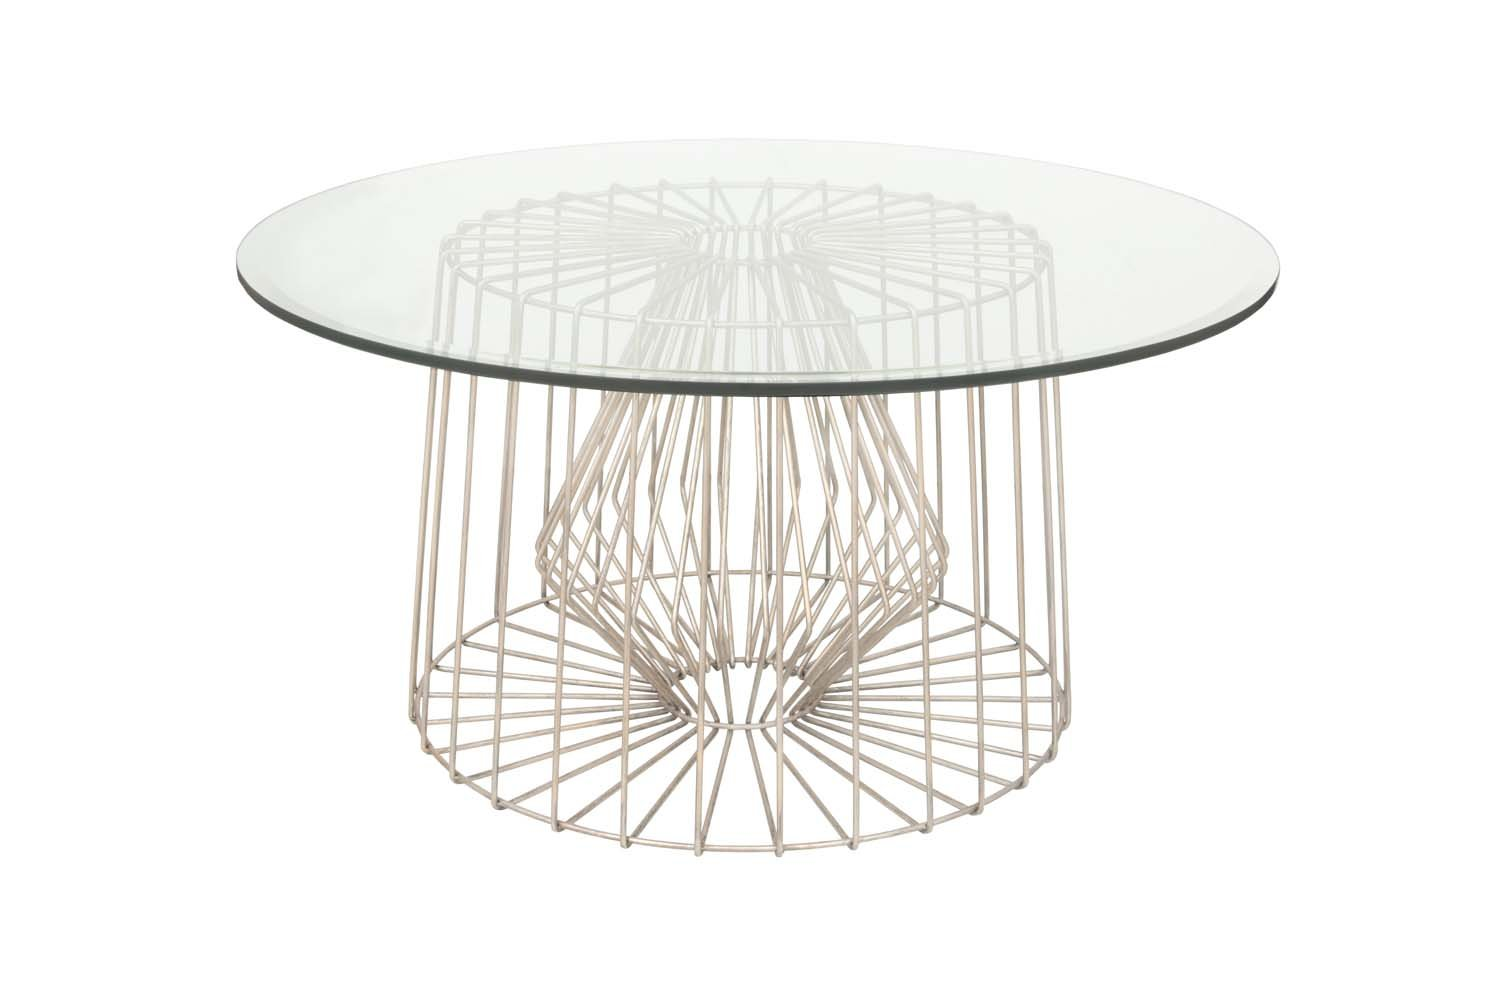 Kalco Lighting 800502PS Coffee Table - Coffee table from the Metro collection Height: 18.00 inches Width: 36.00 inches Style: transitional light Type: wall sconce - living-room-furniture, living-room, coffee-tables - 61IqTrwdsqL -